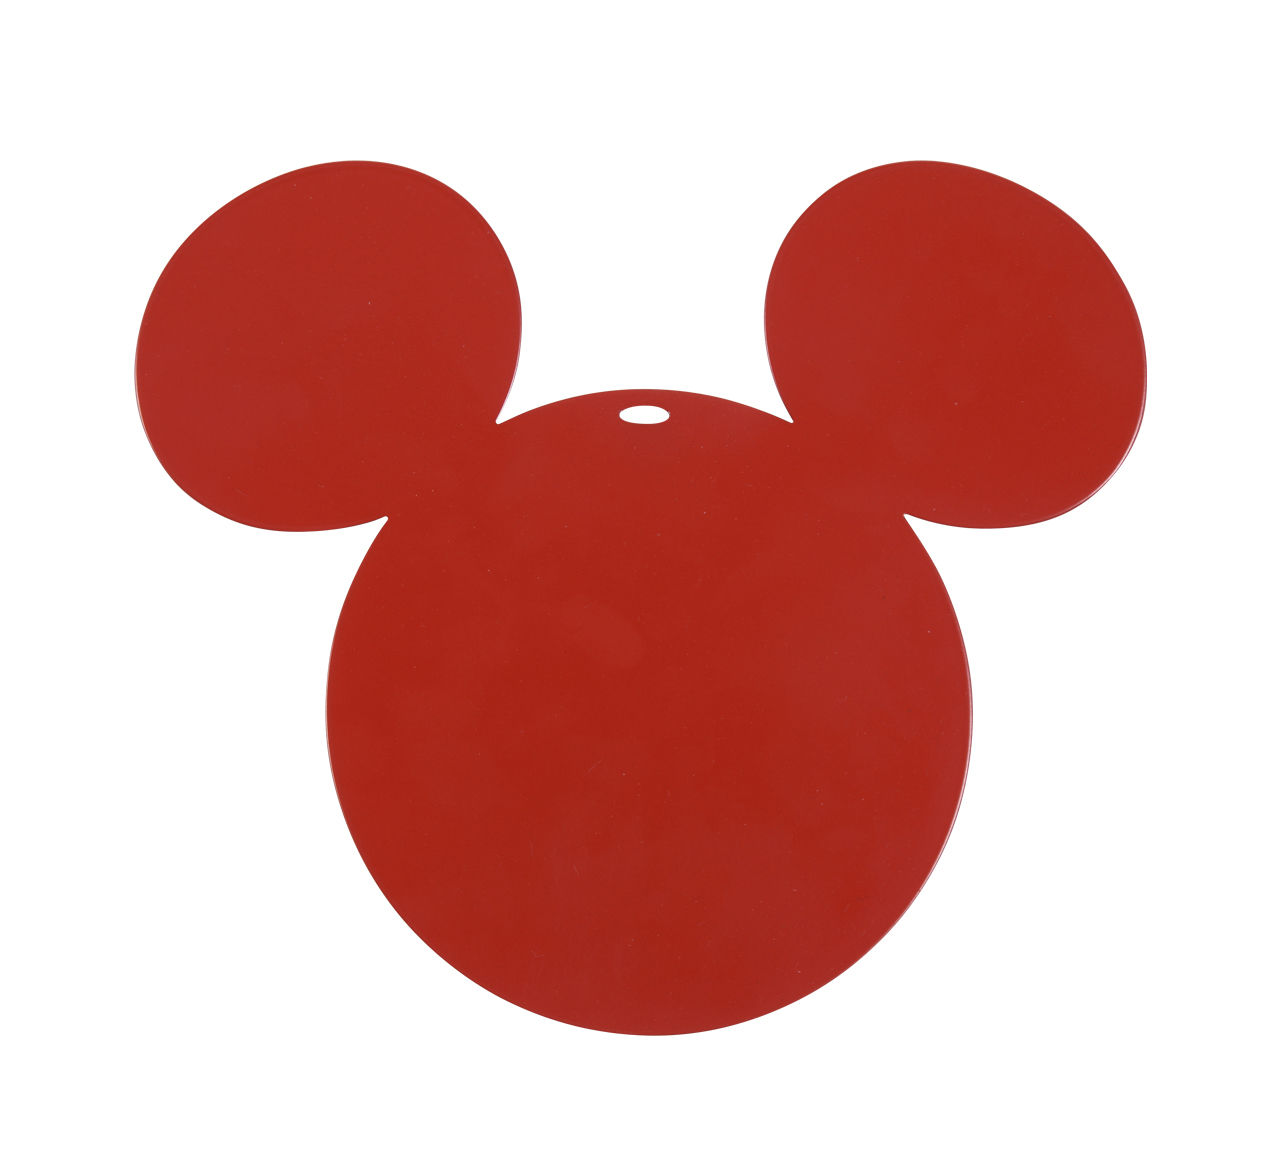 Tableware - Table Mats & Trivets - Mickey Tablemat - / Metal by Fermob - Poppy red - Electro-galvanized steel